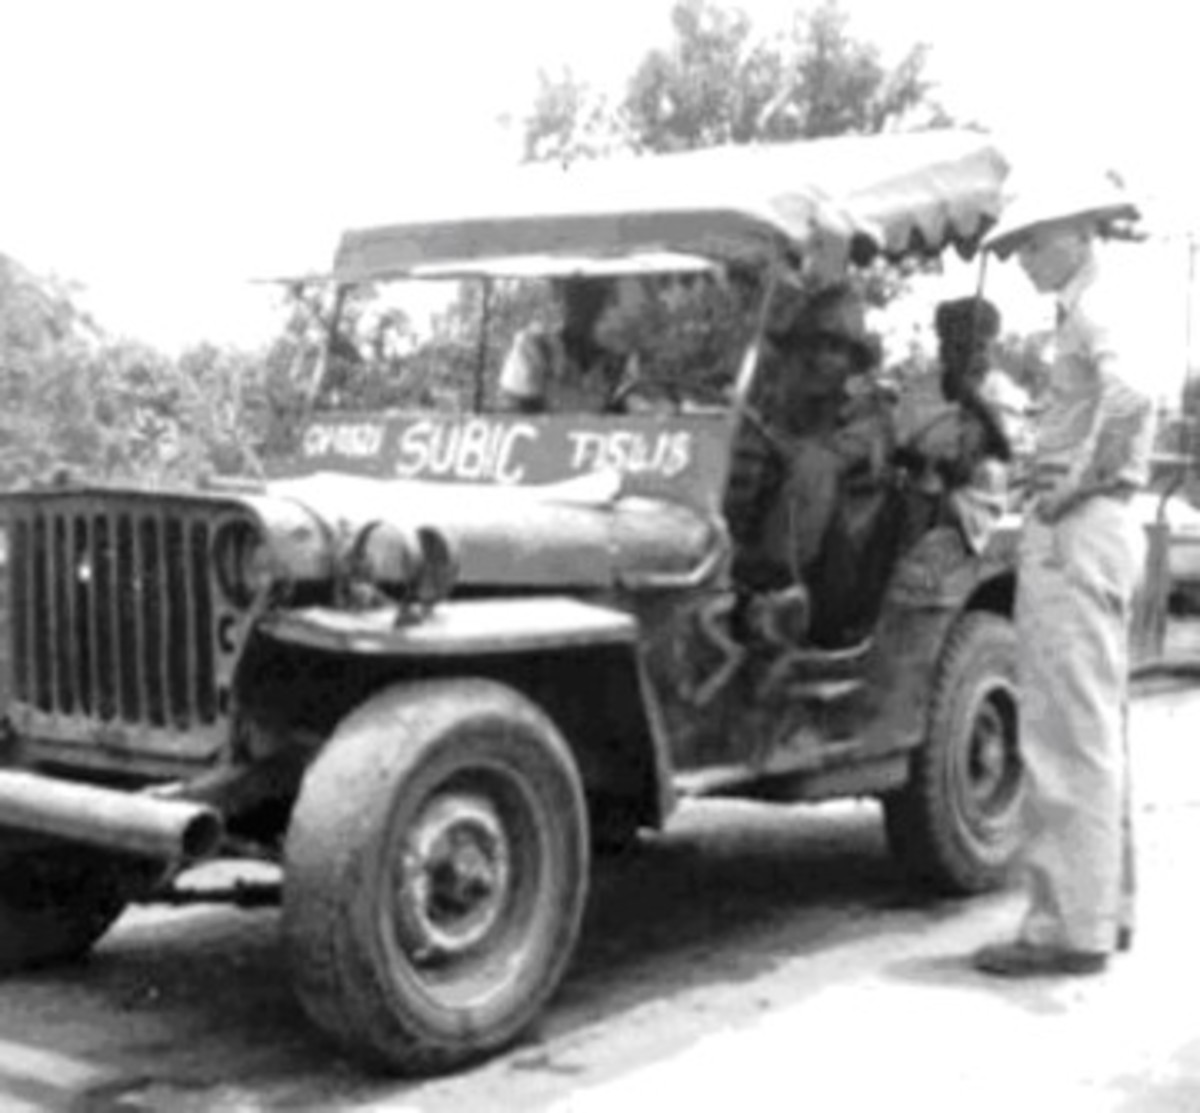 This Subic jeep sports a fringed top. These were probably set up to do passenger service within the base to ferry workers from the base gates to their place of work.